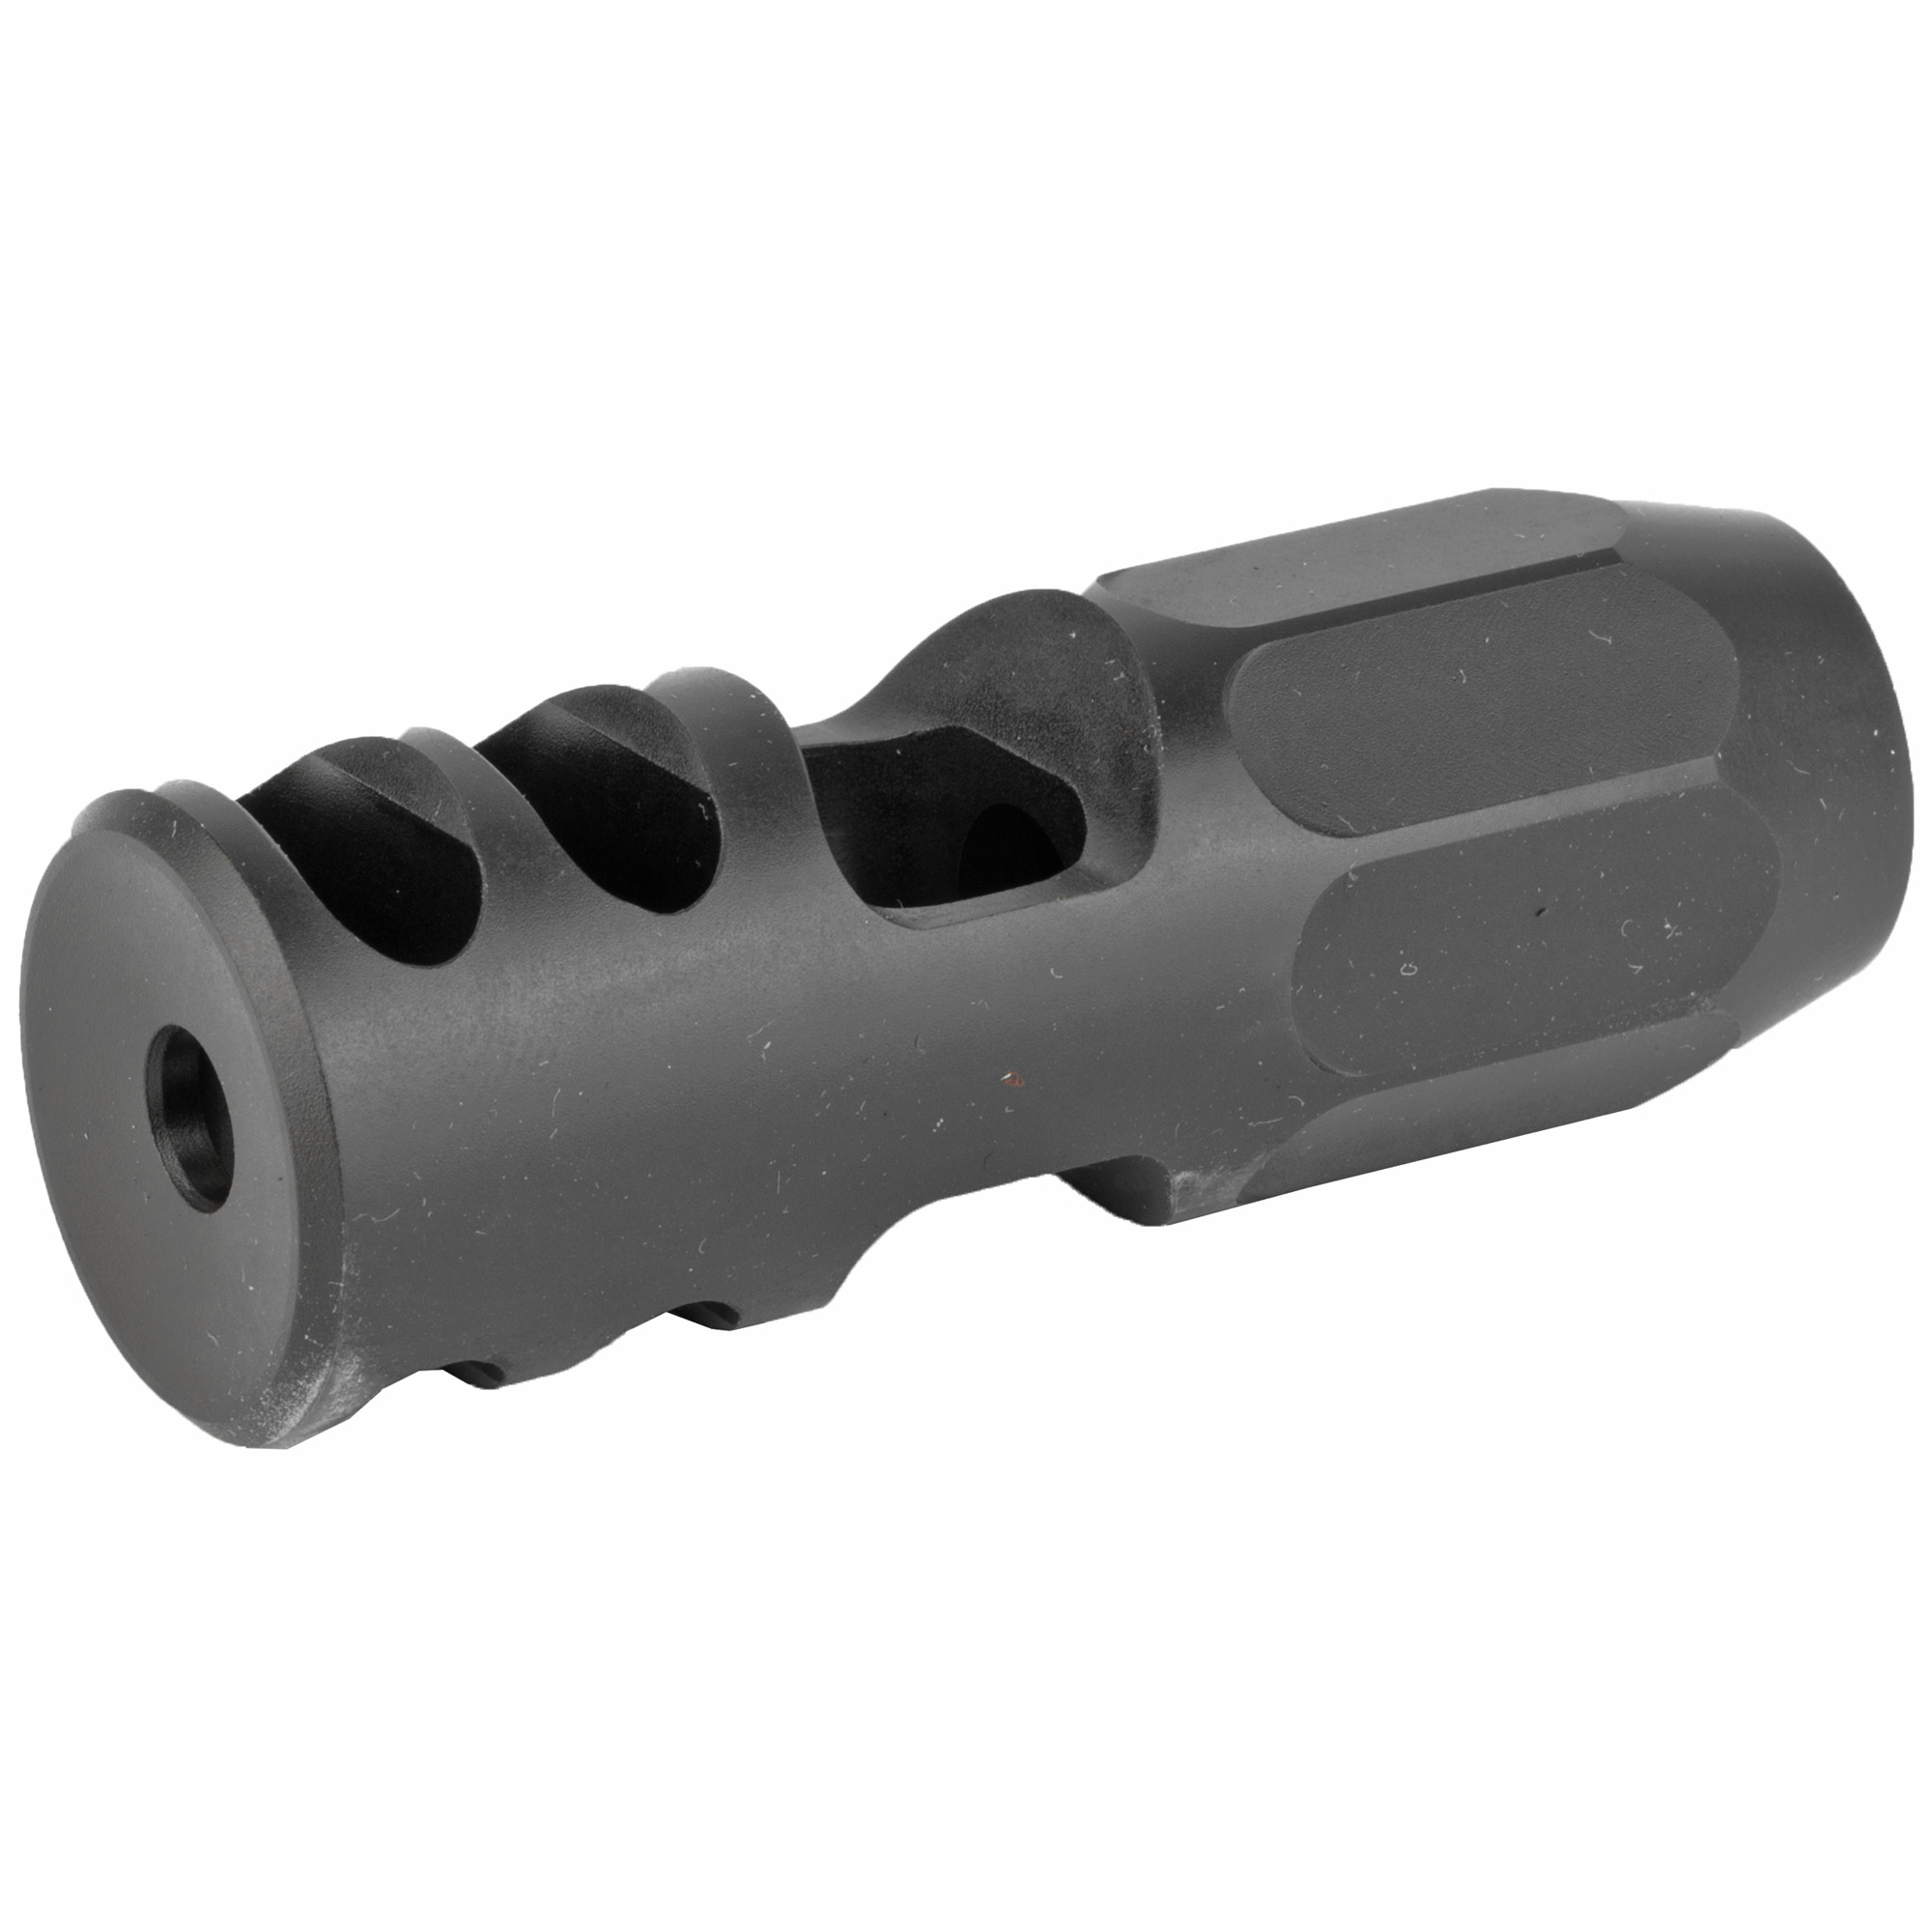 """The Lancer Nitrous compensator is a """"tunable"""" compensator. Engineered with a blast chamber and tunable jets"""" the Nitrous compensator will effectively reduce muzzle climb making for faster follow on shots. Angled blast baffles are incorporated to reduce recoil and further stabilize the rifle. The jets release gas from the blast chamber creating a downward force on the muzzle of the rifle. Different size jets are supplied with the compensator so the operator can customize the downward force"""" minimizing muzzle climb. Tuning is a simple matter of changing the combination of jets until the desired effect is achieved."""